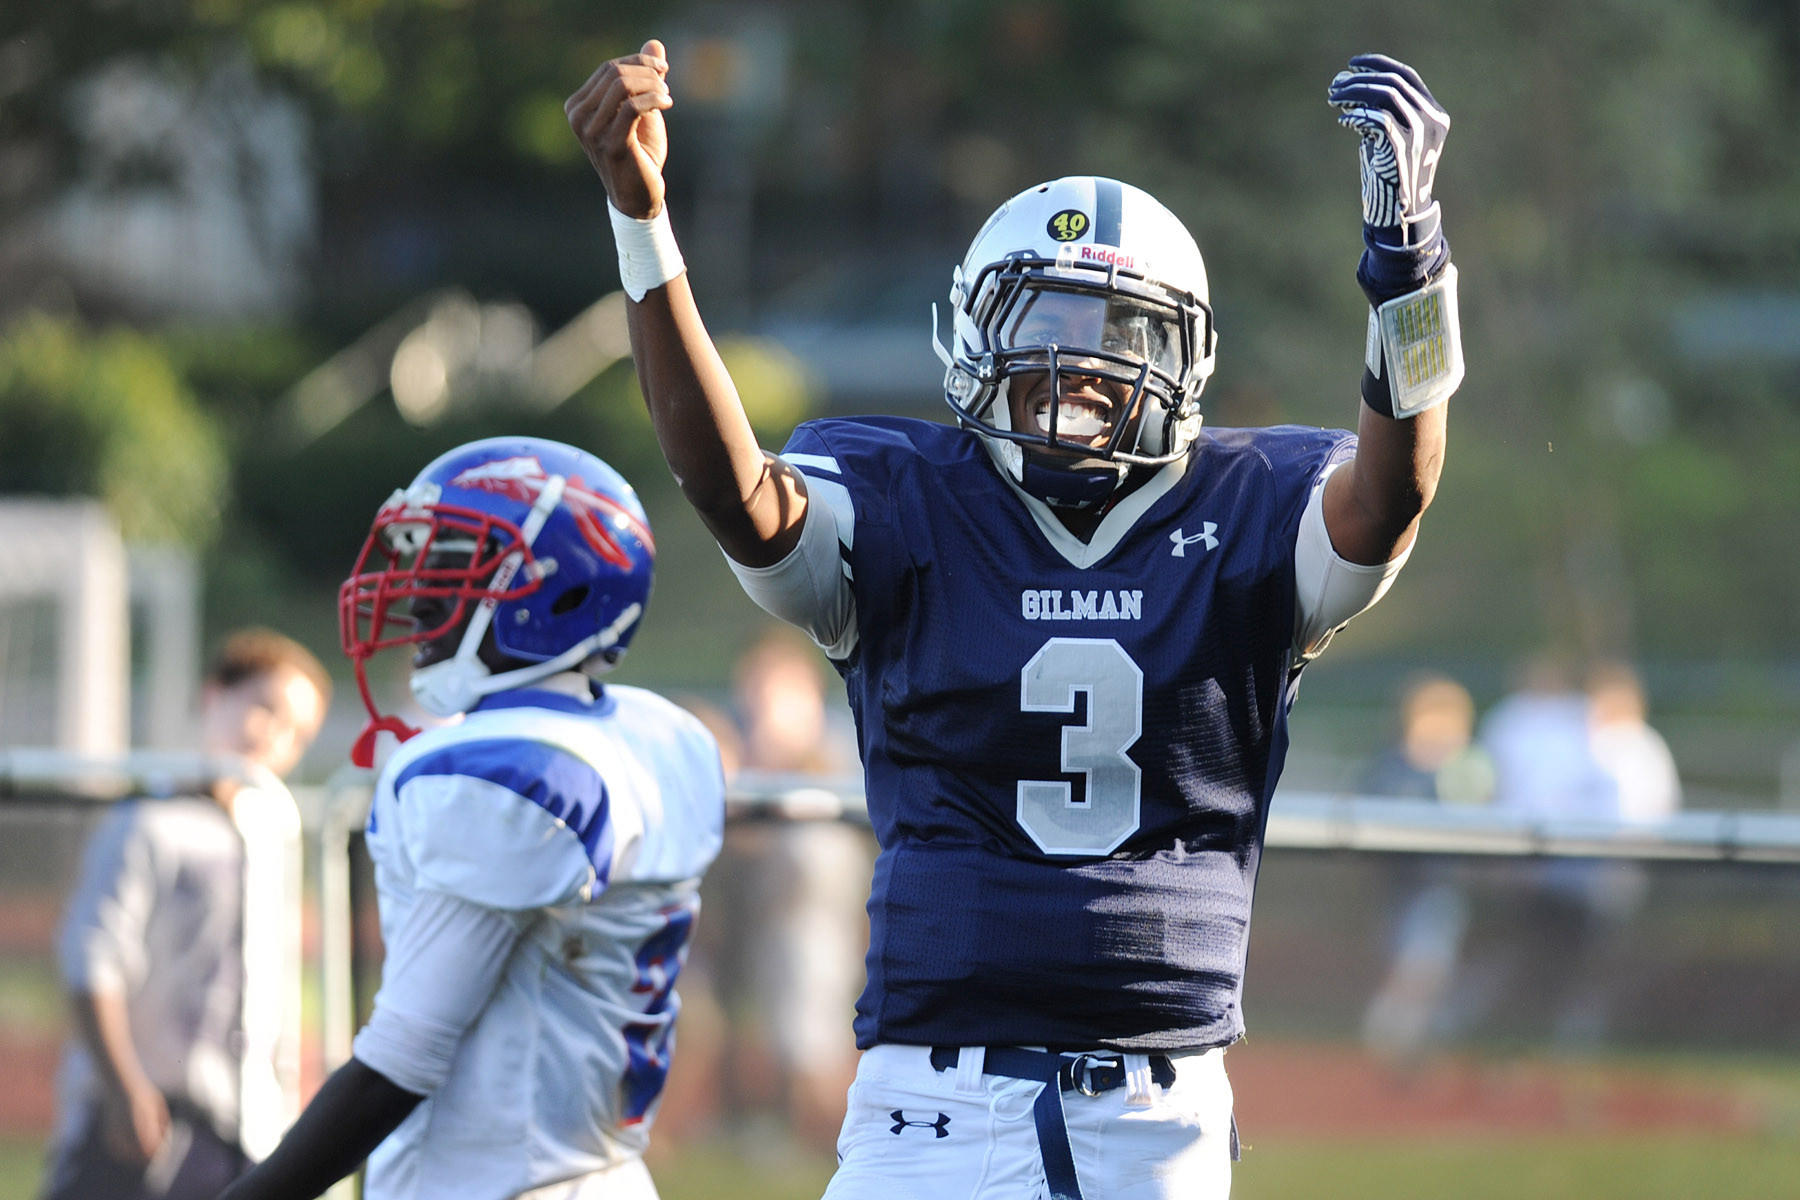 Gilman quarterback Kai Locksley celebrates a long run for a touchdown against Anacostia in September.